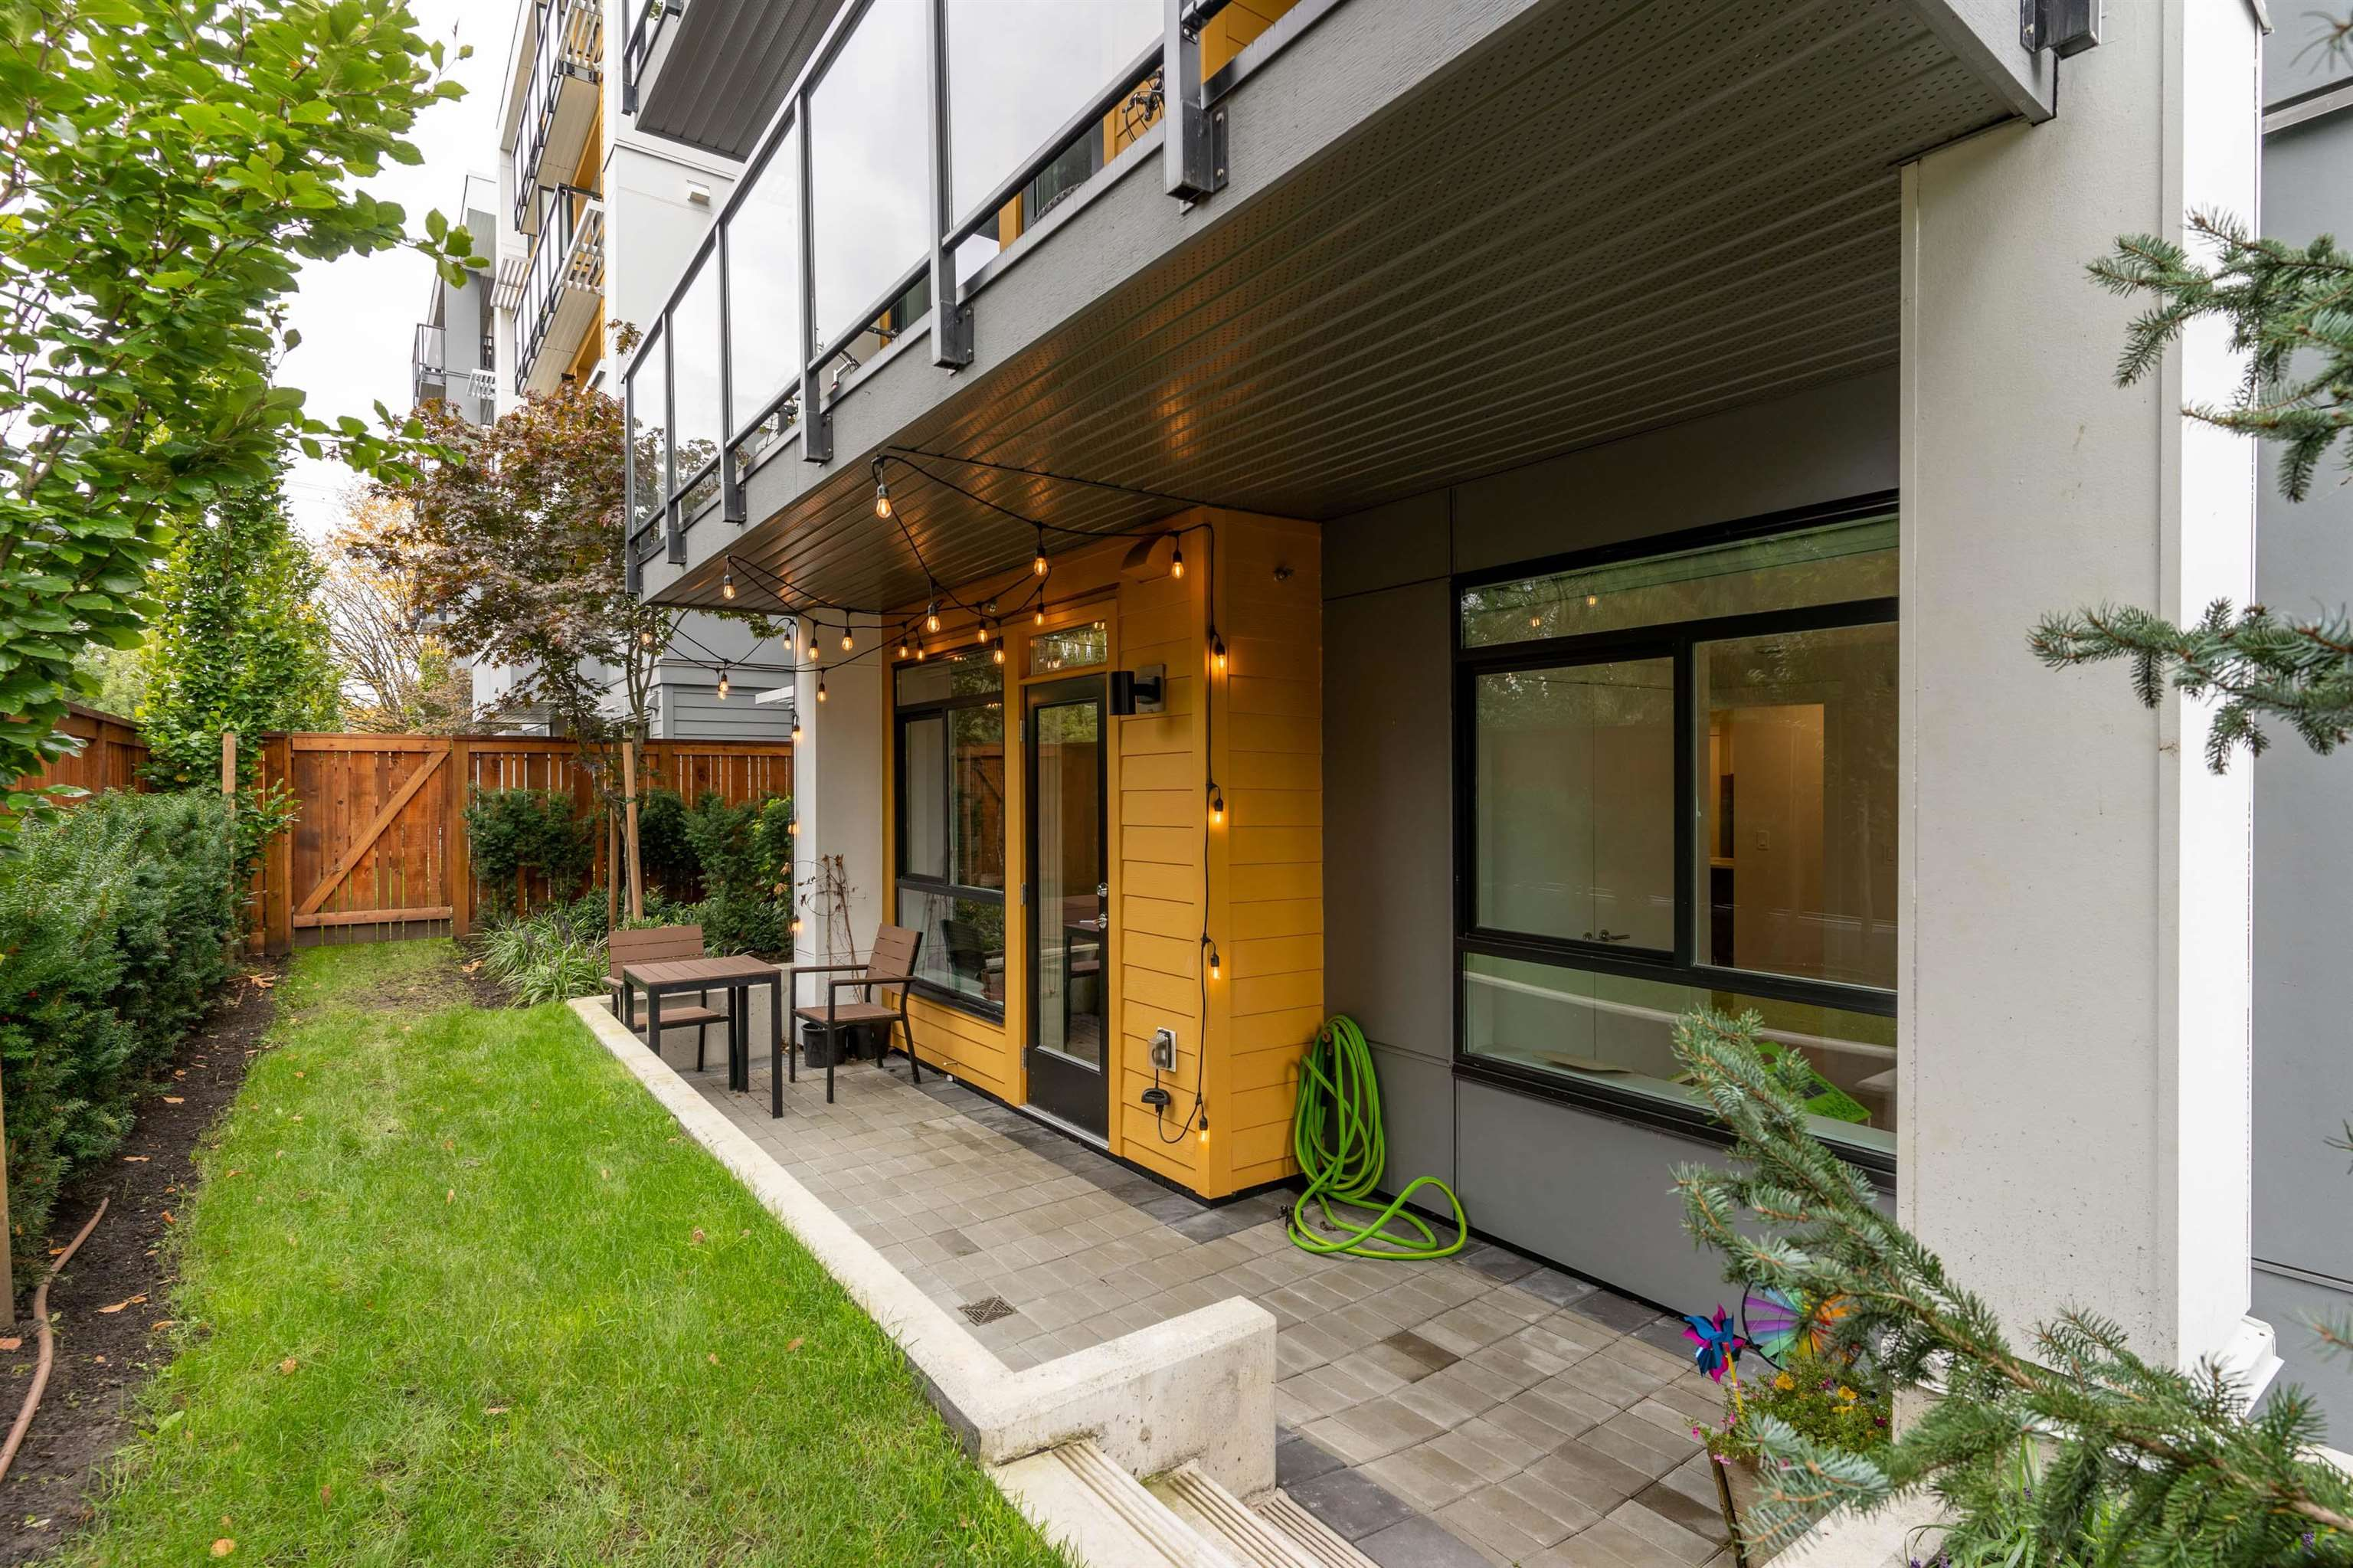 102 1519 CROWN STREET - Lynnmour Apartment/Condo for sale, 3 Bedrooms (R2625295) - #19